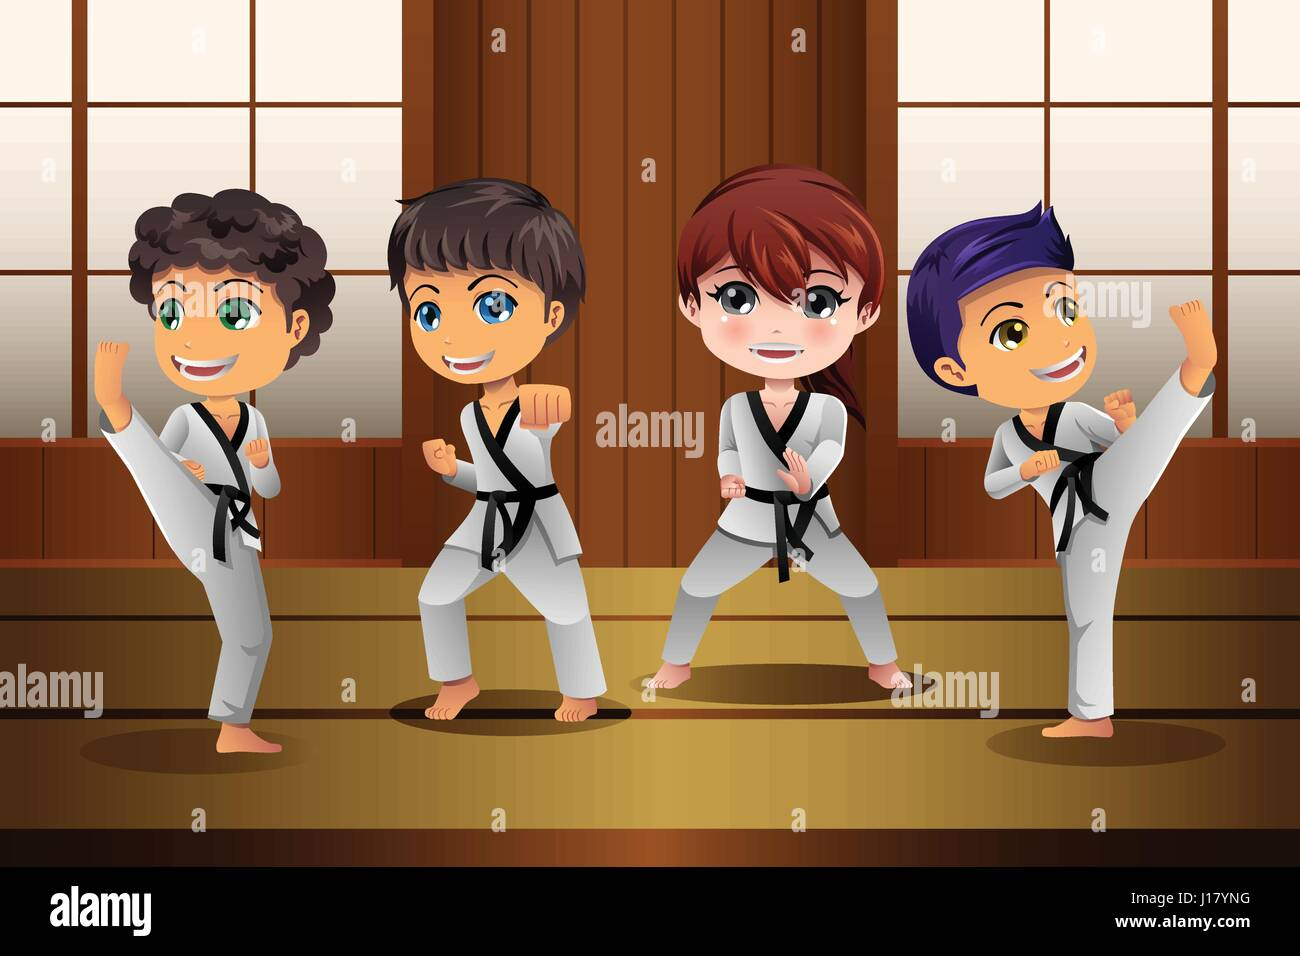 Karate Kid Stock Vector Images